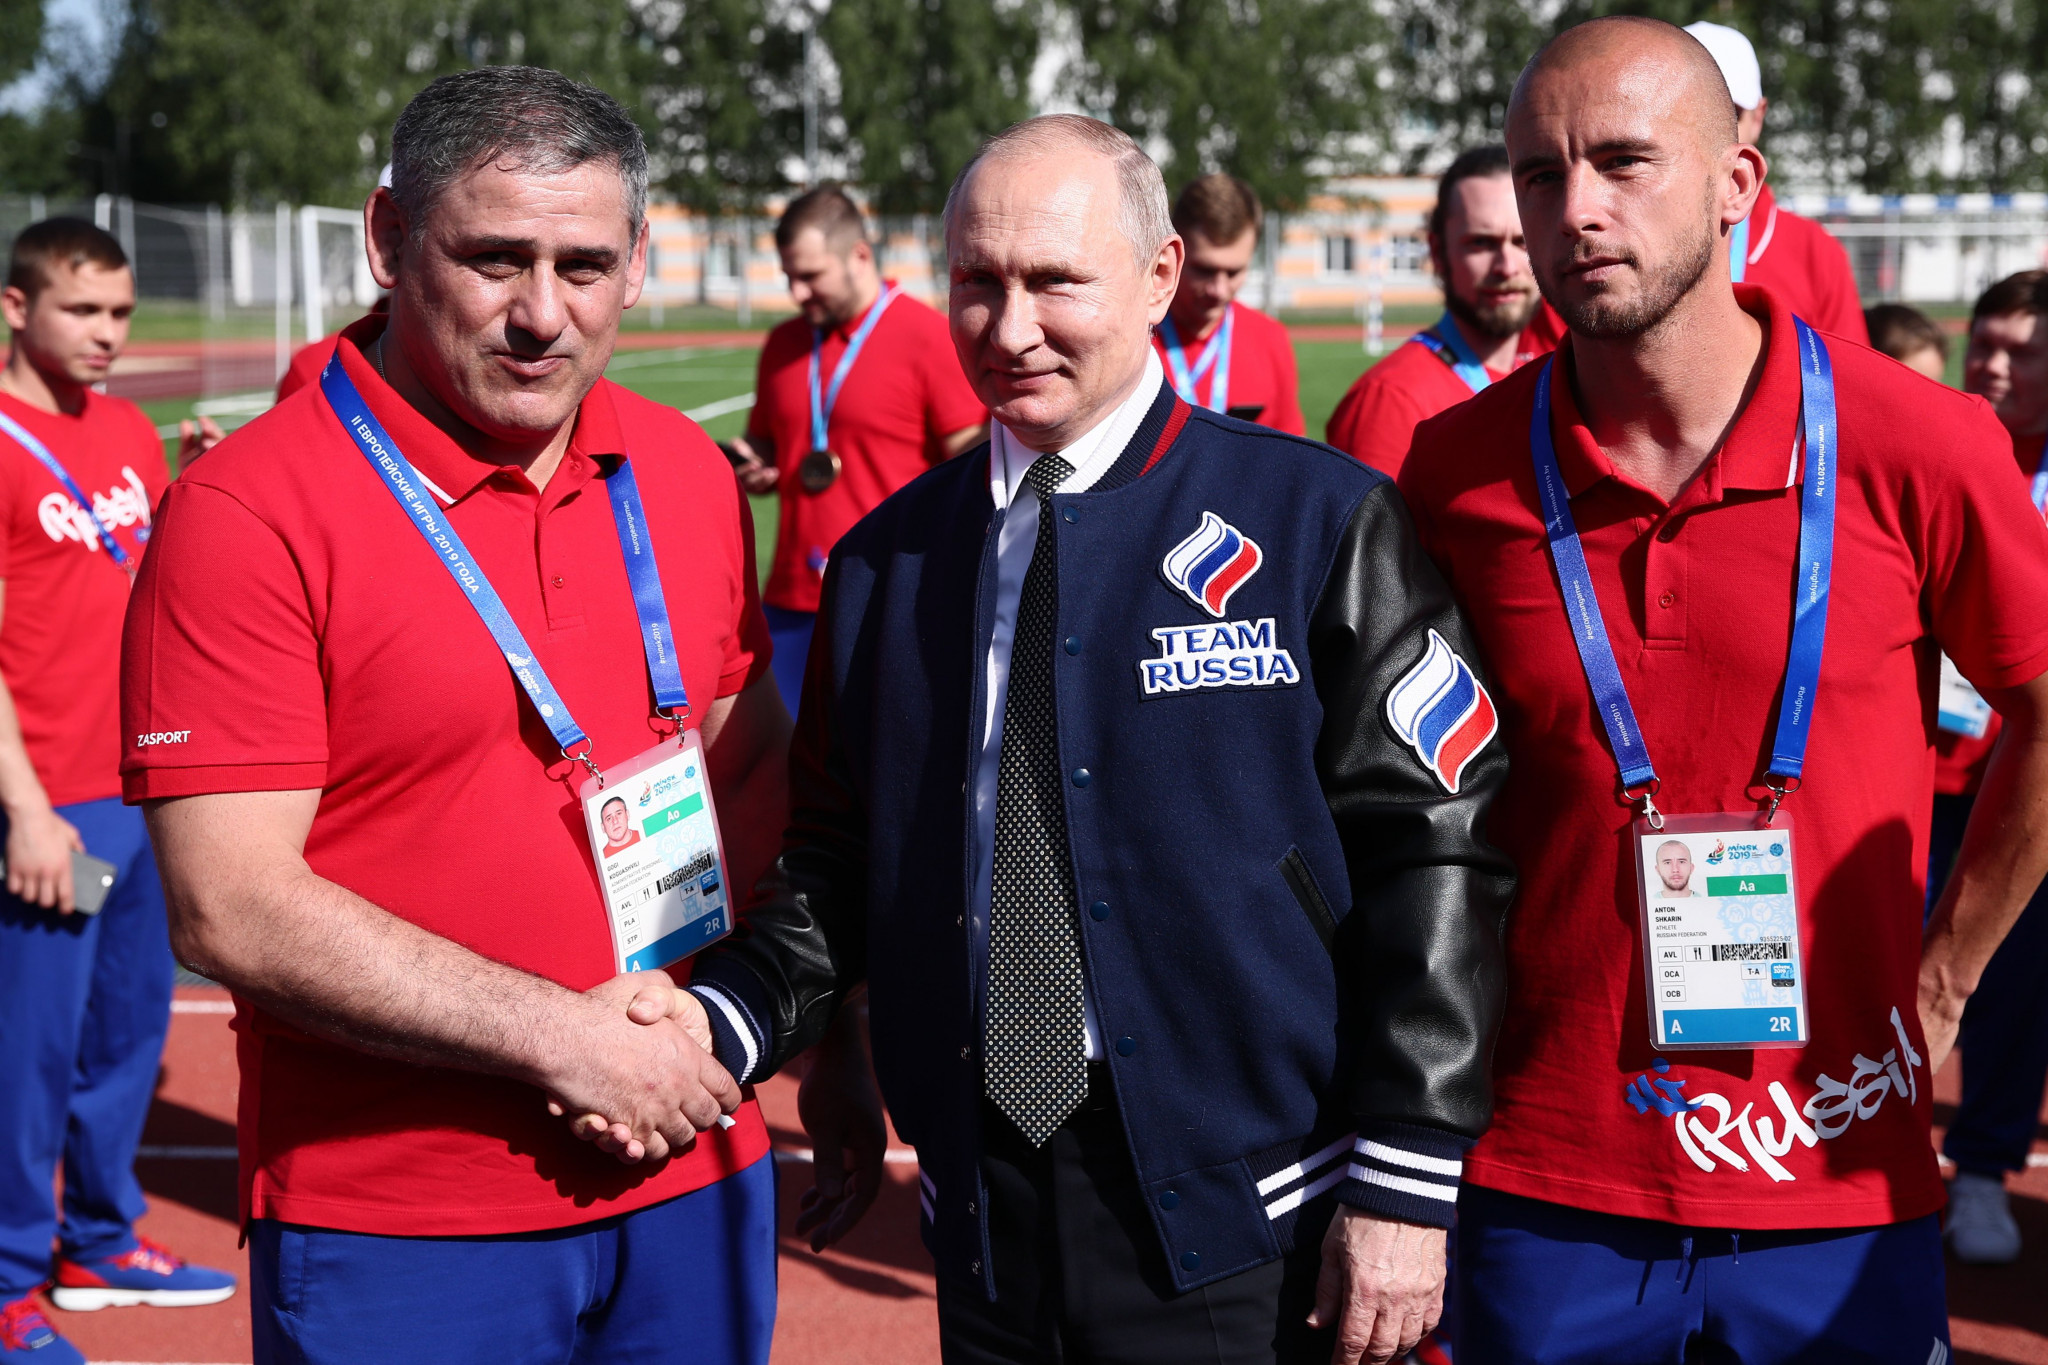 Vladimir Putin received a Team Russia jacket from athletes during the European Games ©Getty Images